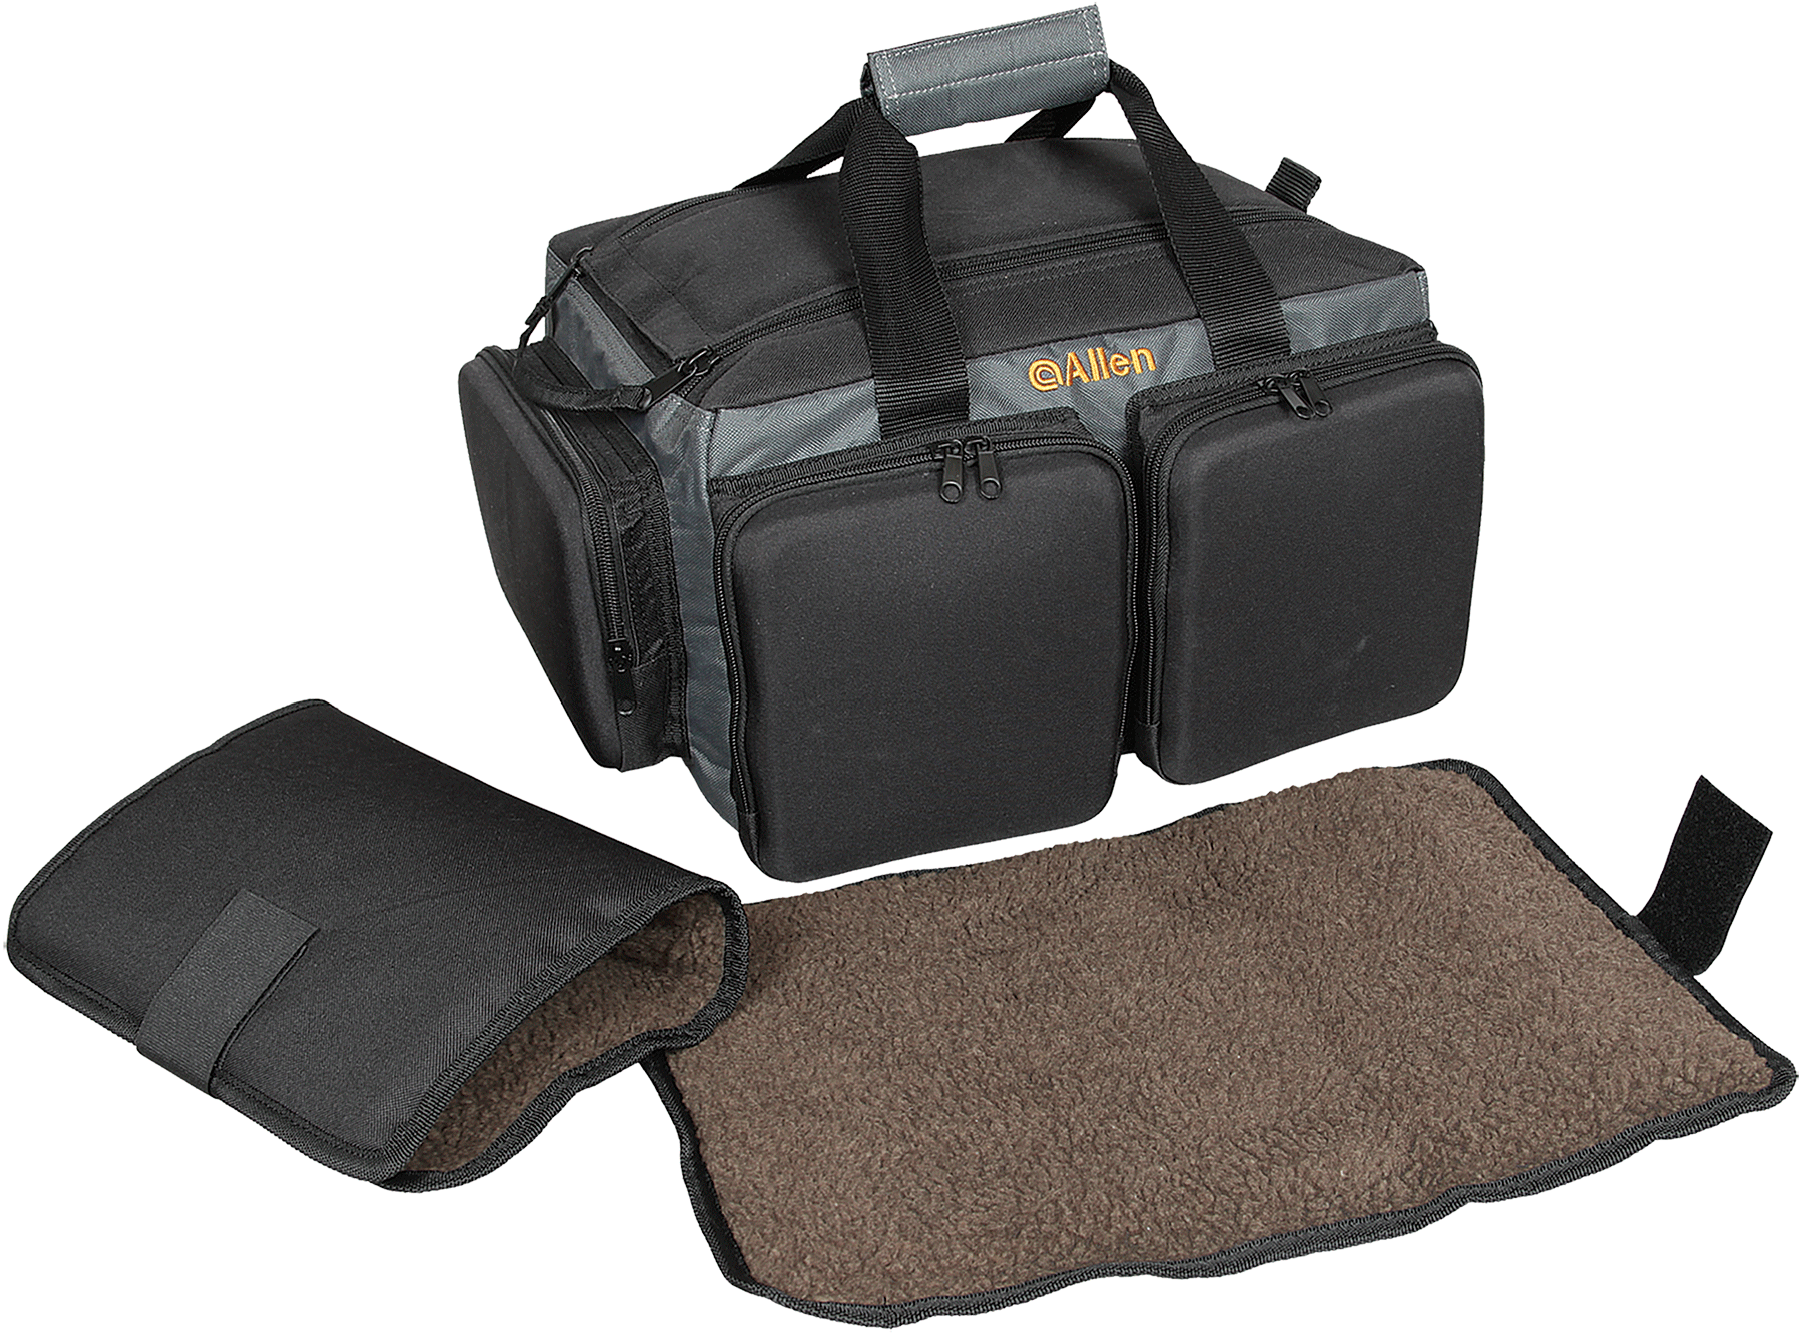 Allen 2204 RangeMaster Shooting Gun Case Pistol Bag  Large Black/Gray